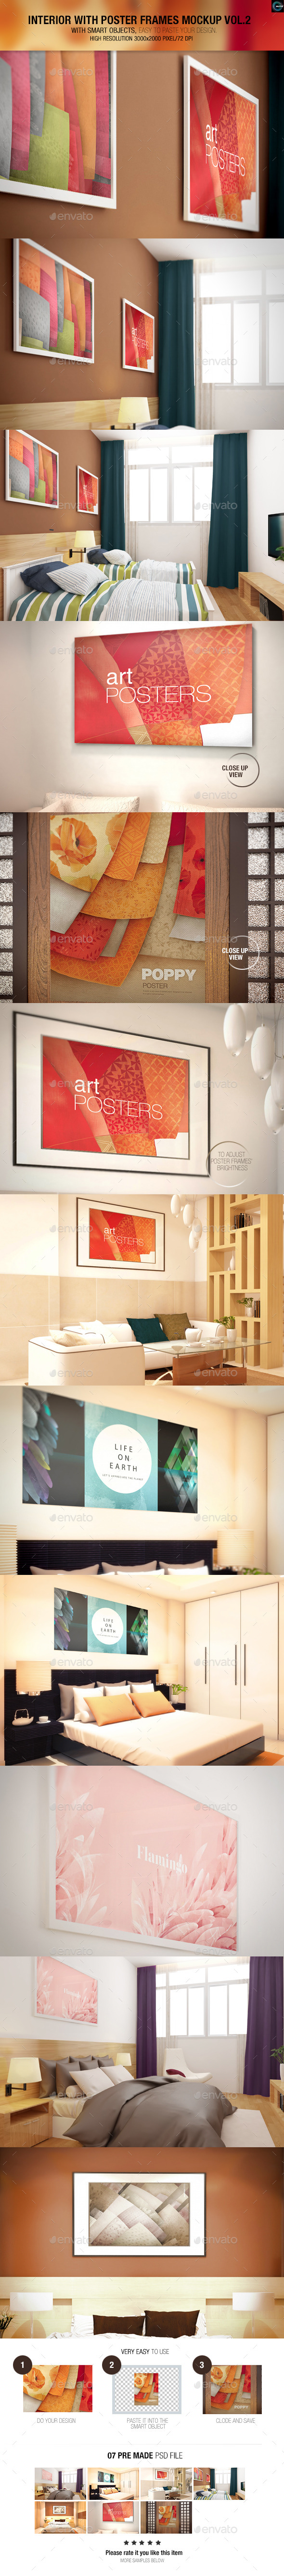 Interior With Poster Frames Mock-up Vol.2